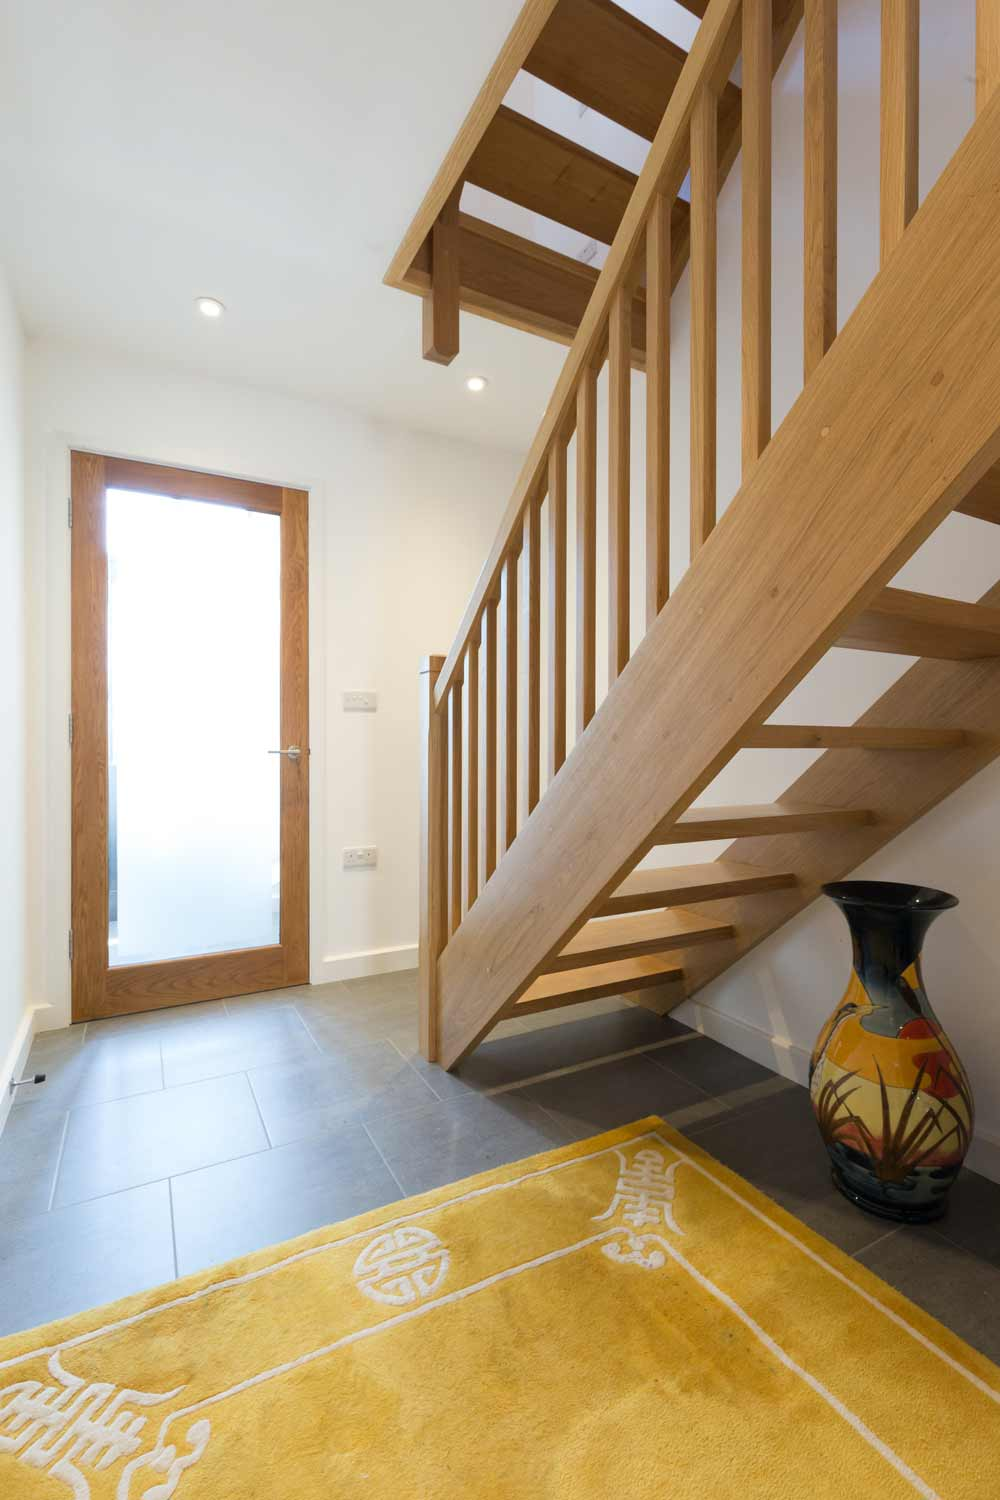 oak open tread staircase entrance hall full glazed door